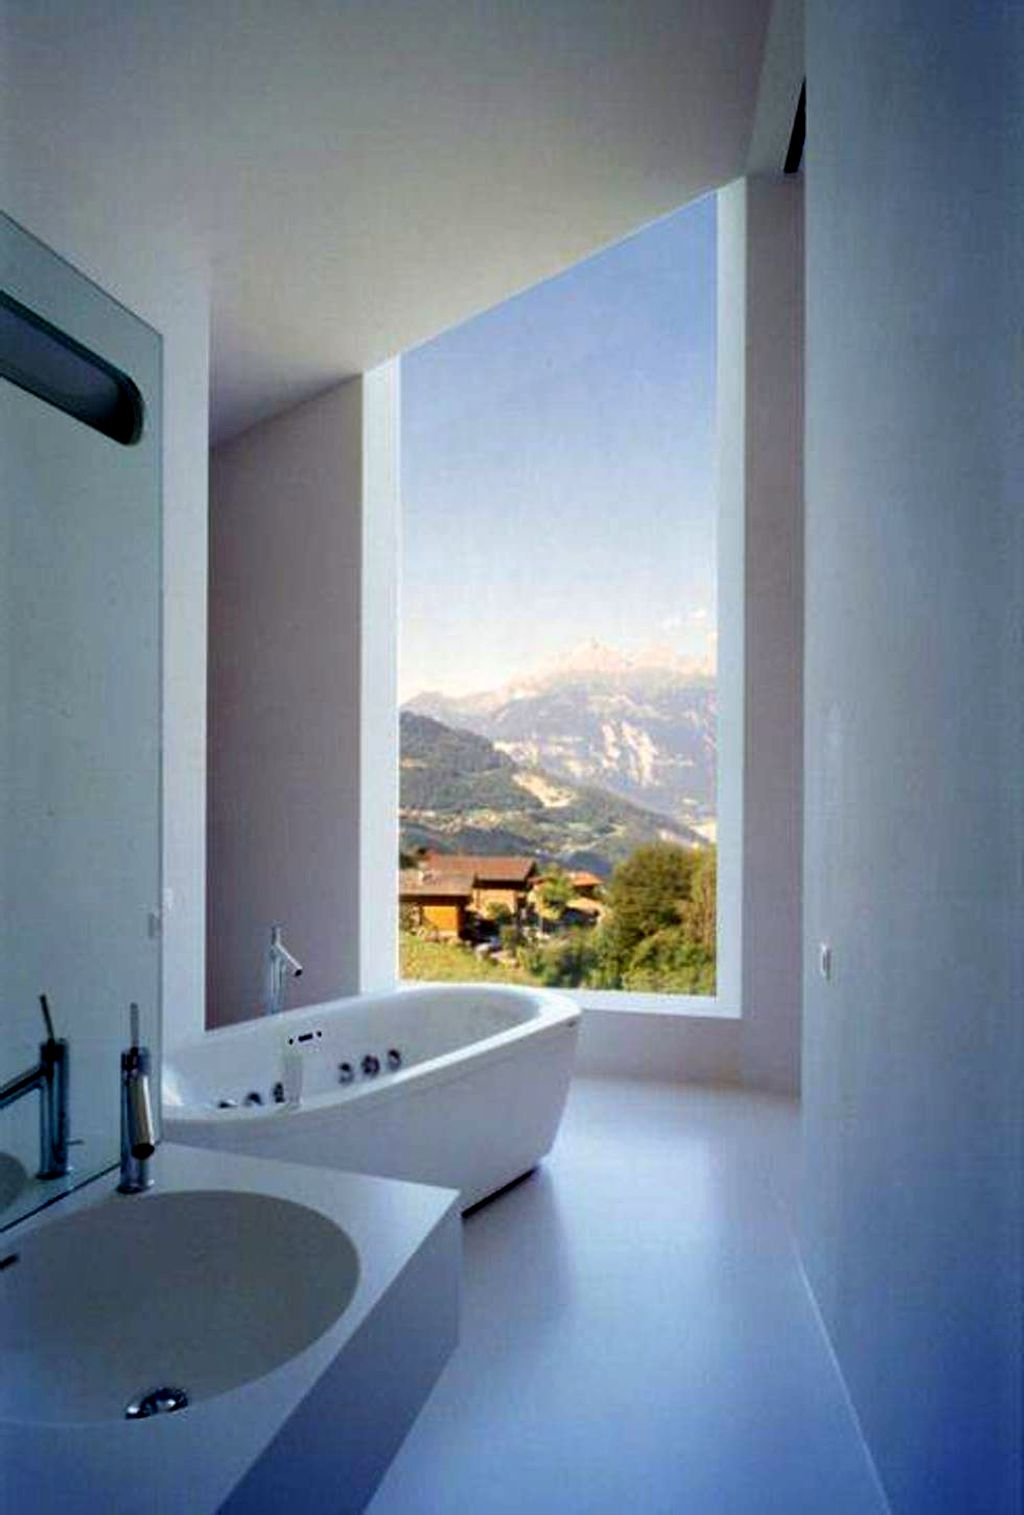 cool-modern-bathrooms-for-small-apartments Ideas For Painting My Kitchen on ideas for painting my office, faux painting ideas for kitchen, ideas for painting my room, top american essayists modern kitchen, ideas for painting my bedroom, ideas for decorating my kitchen,